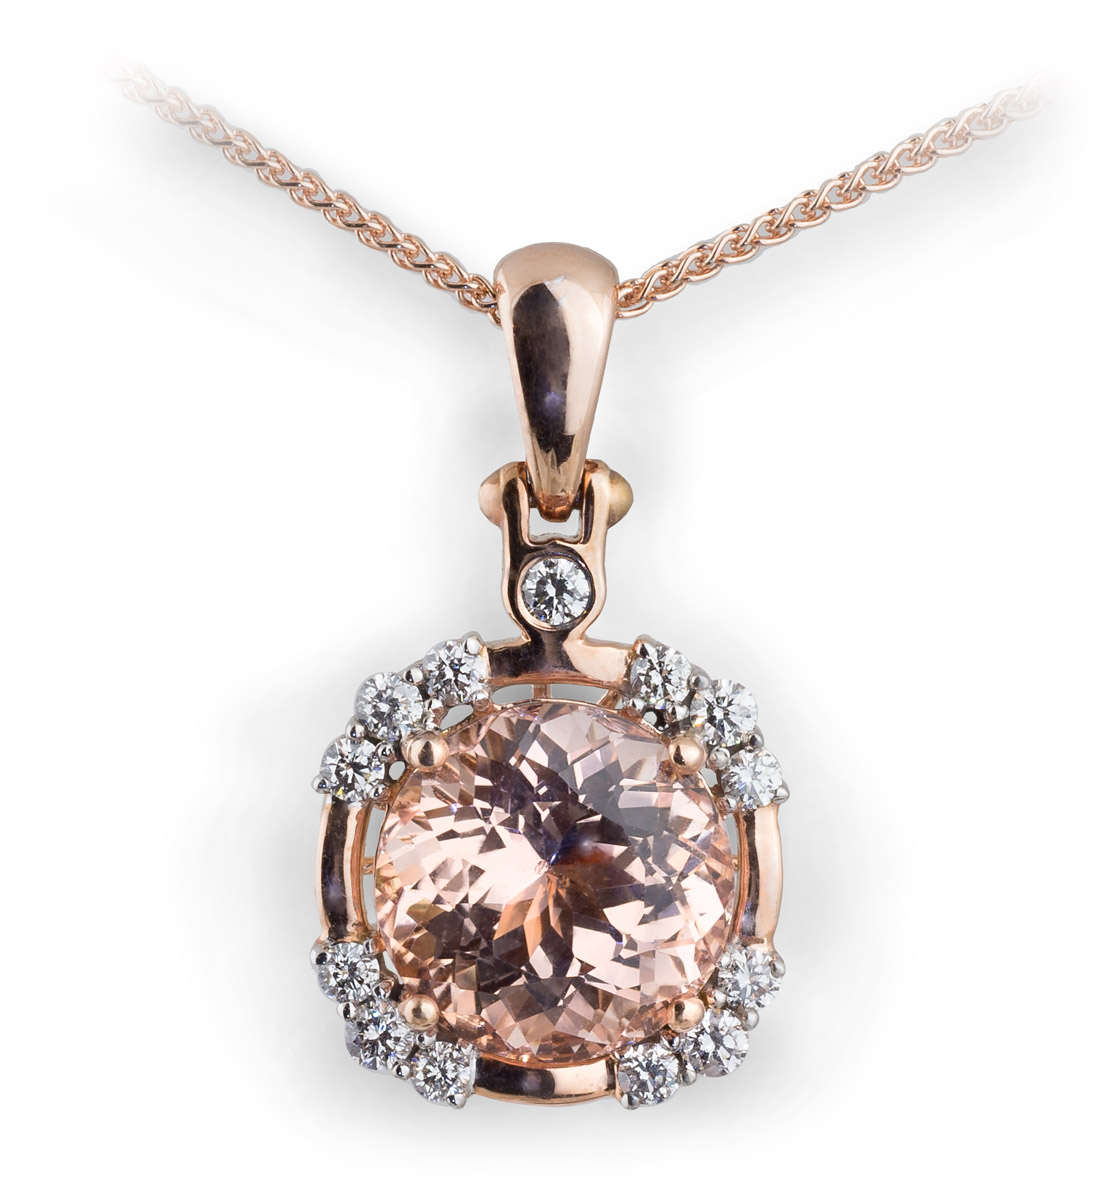 n products collections jewelry son arthur jewelers necklace morganite weeks pink